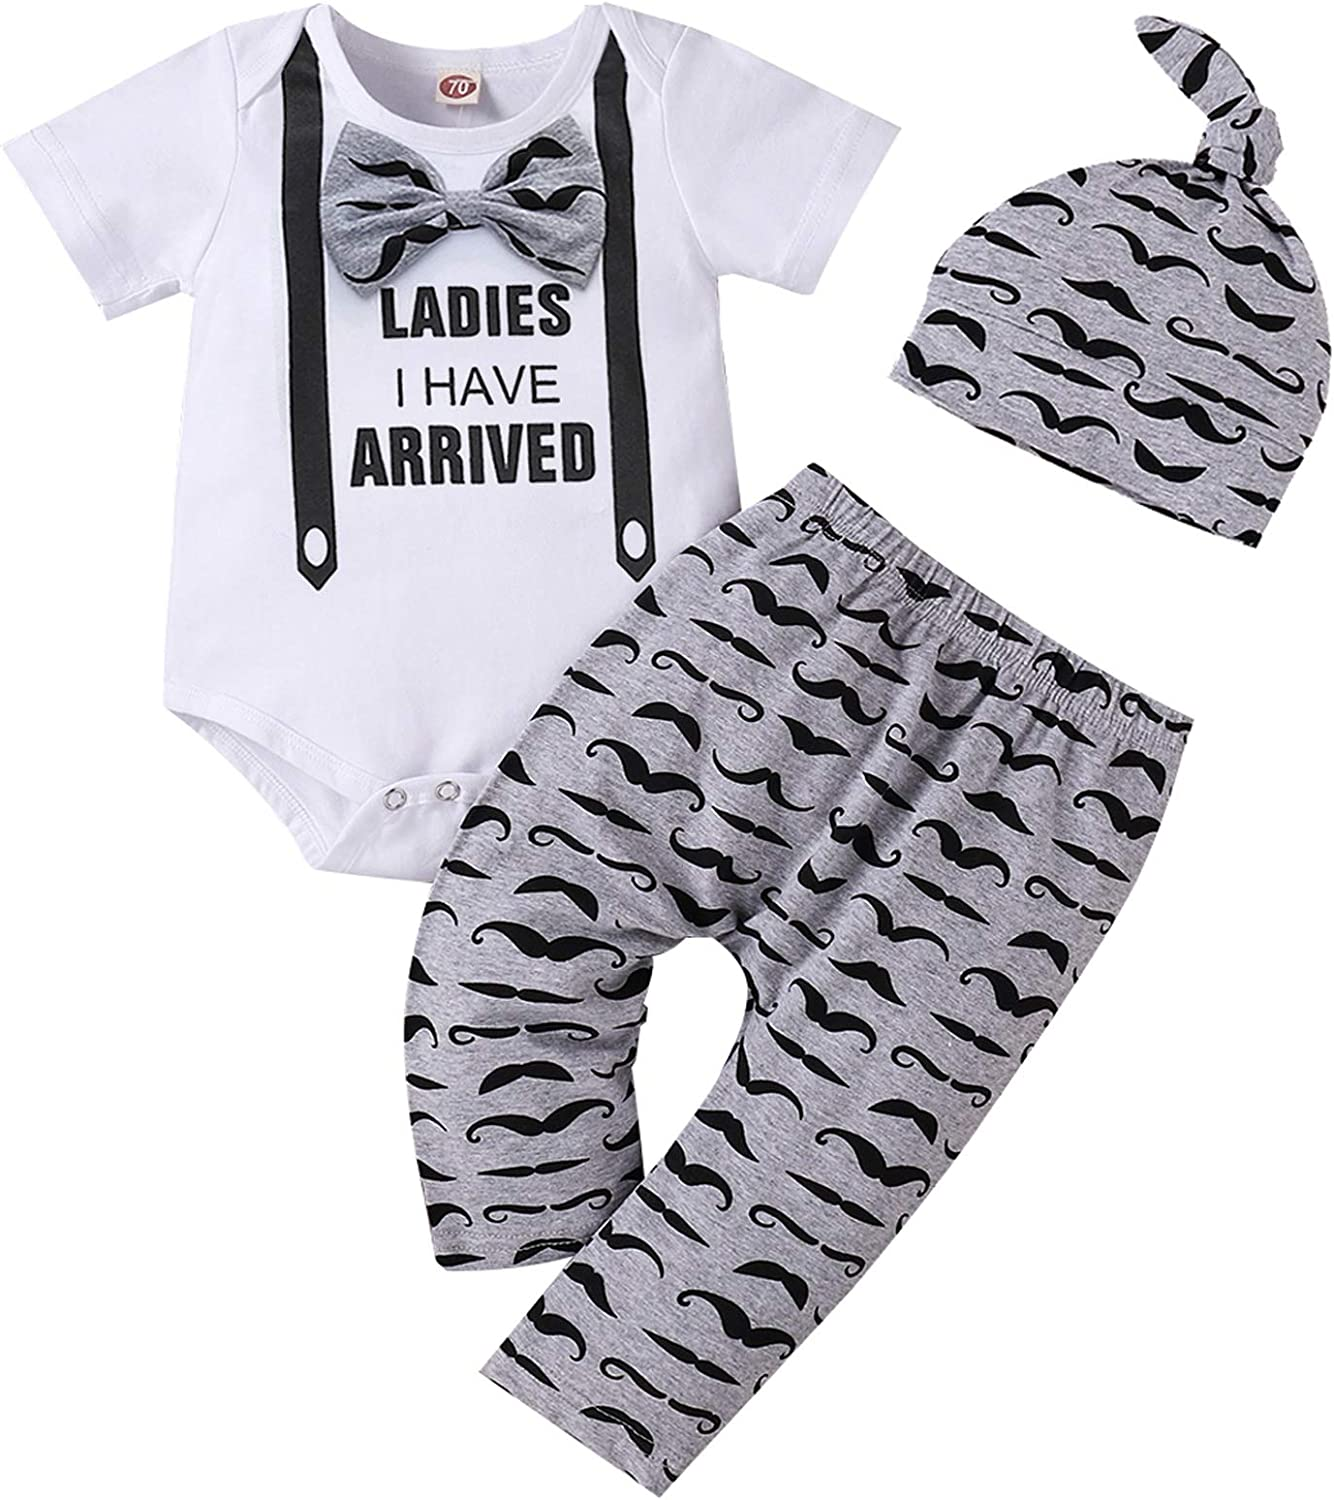 Baby Boy Clothes Stuff Infant Summer 3 Piece Outfits Newborn Cute Letter Printed Romper Short Sleeve + Pants + Hat